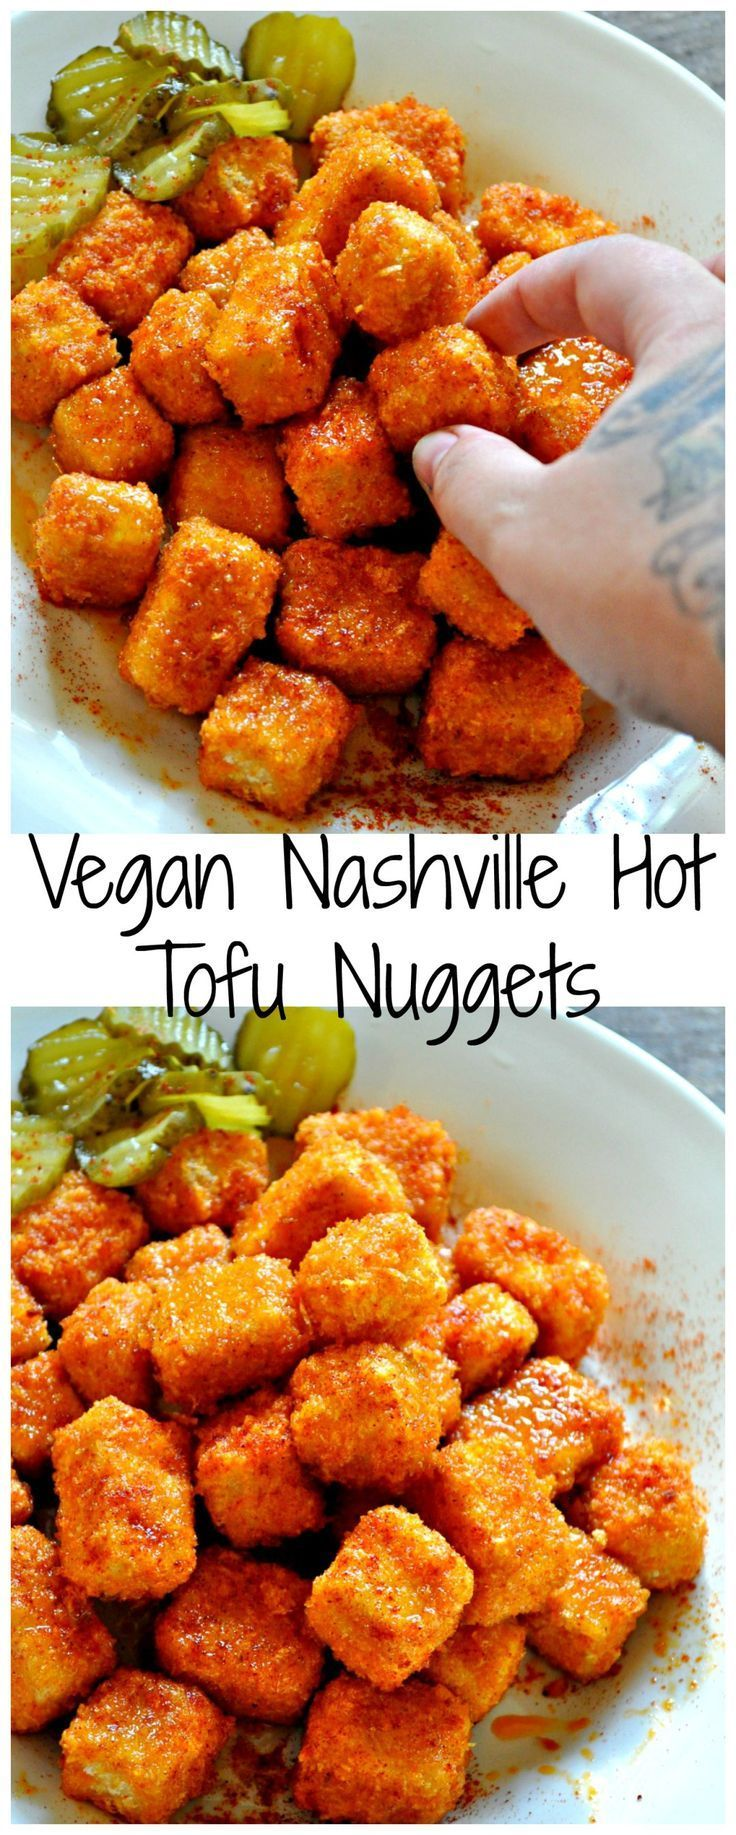 Vegan Nashville Hot Tofu Nuggets